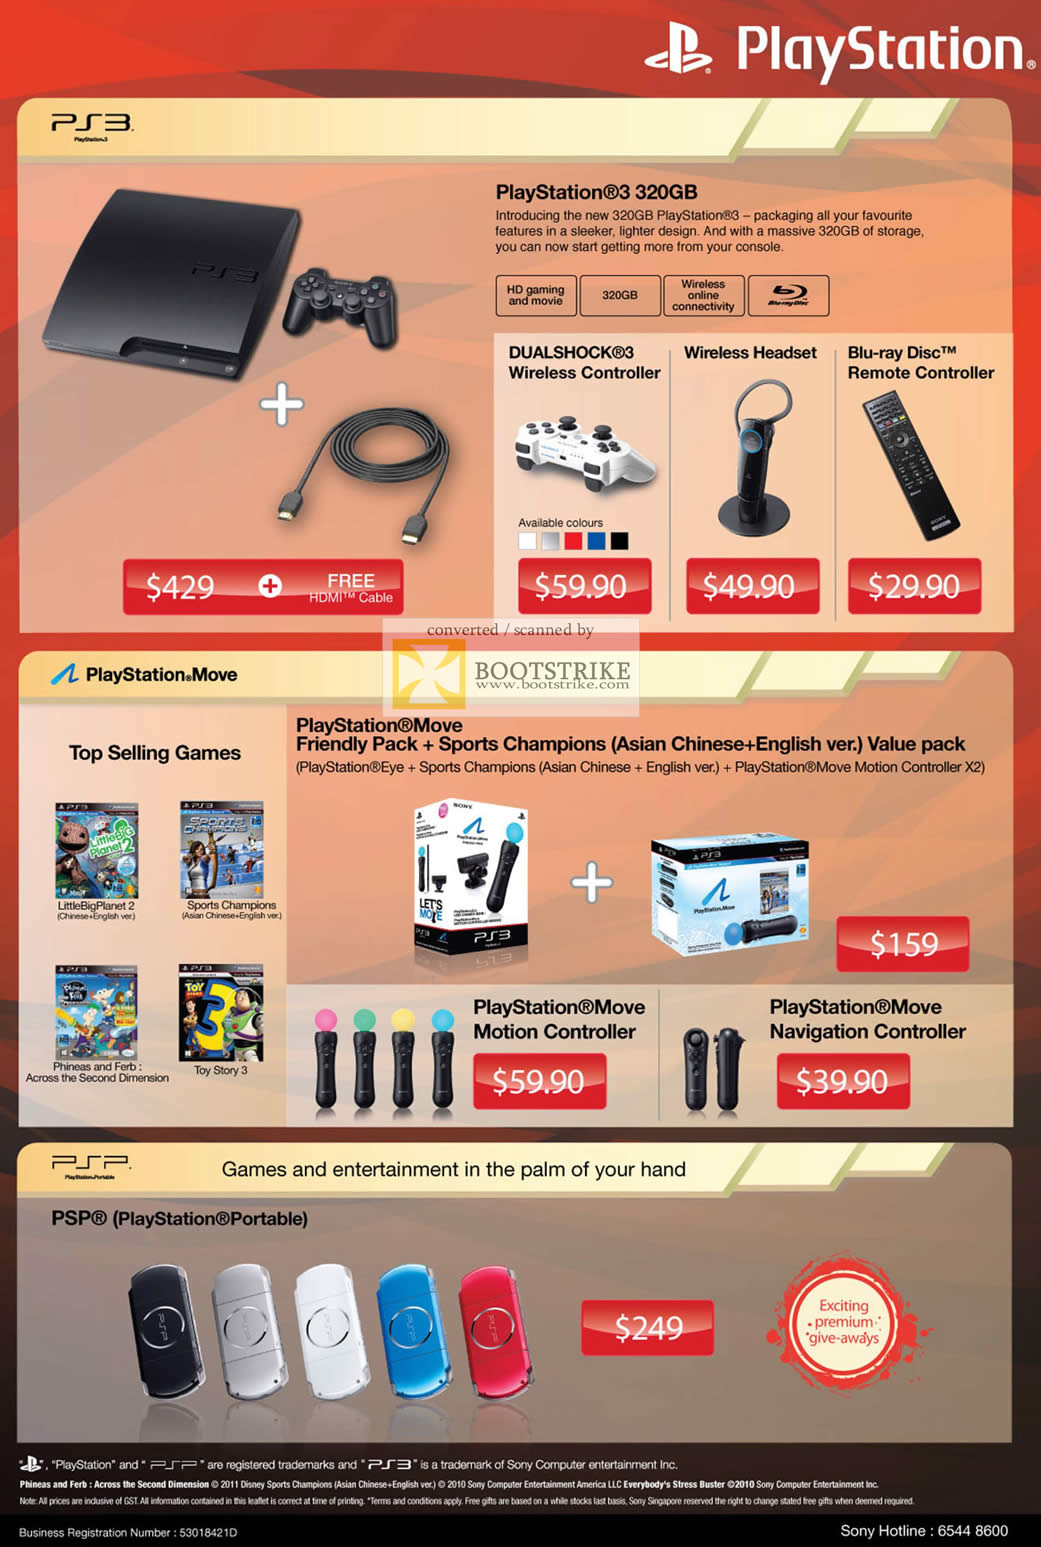 COMEX 2011 price list image brochure of Sony Playstation 3 PS3 320GB Dualshock Wireless Controller Headset Blu-Ray Disc Remote Controller Move Motion Sports Champions Value Pack PSP Portable